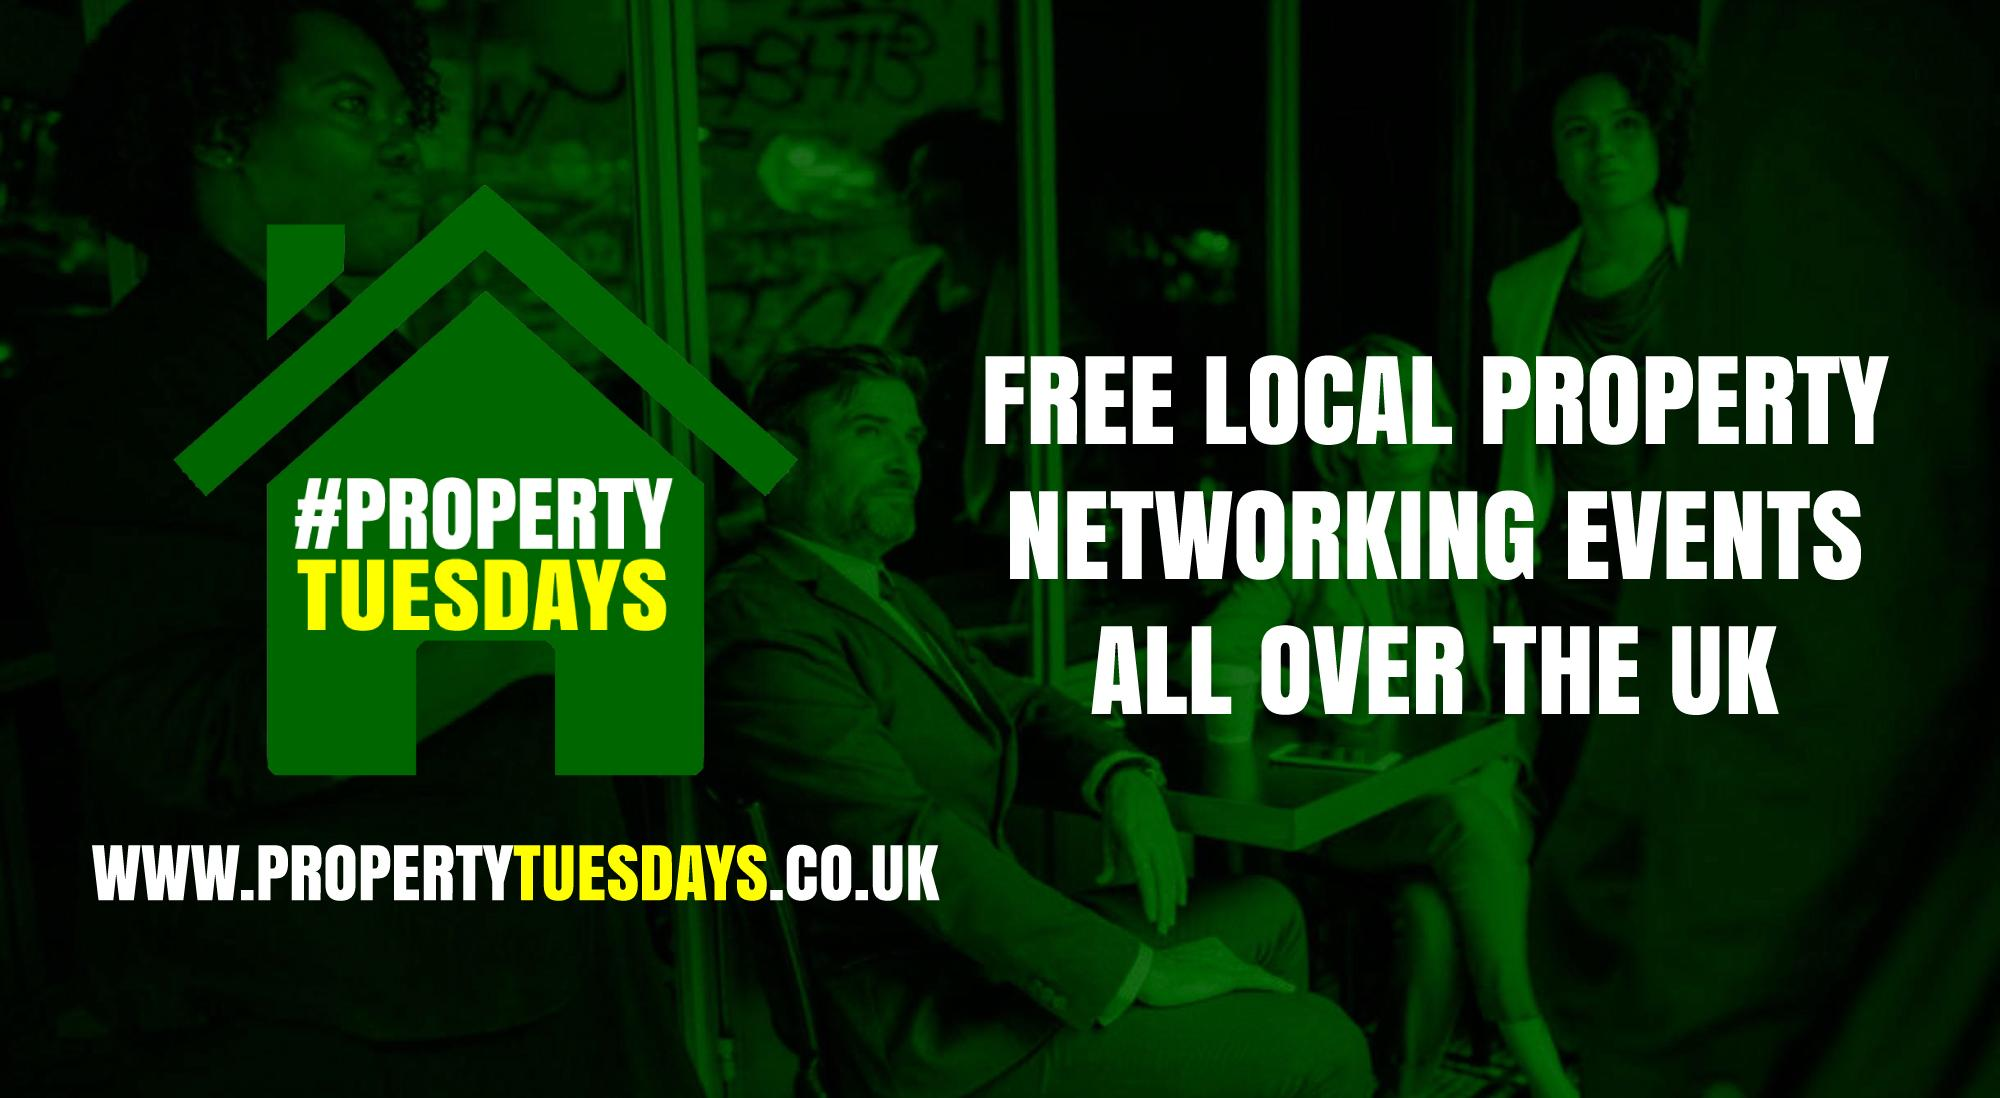 Property Tuesdays! Free property networking event in Leeds